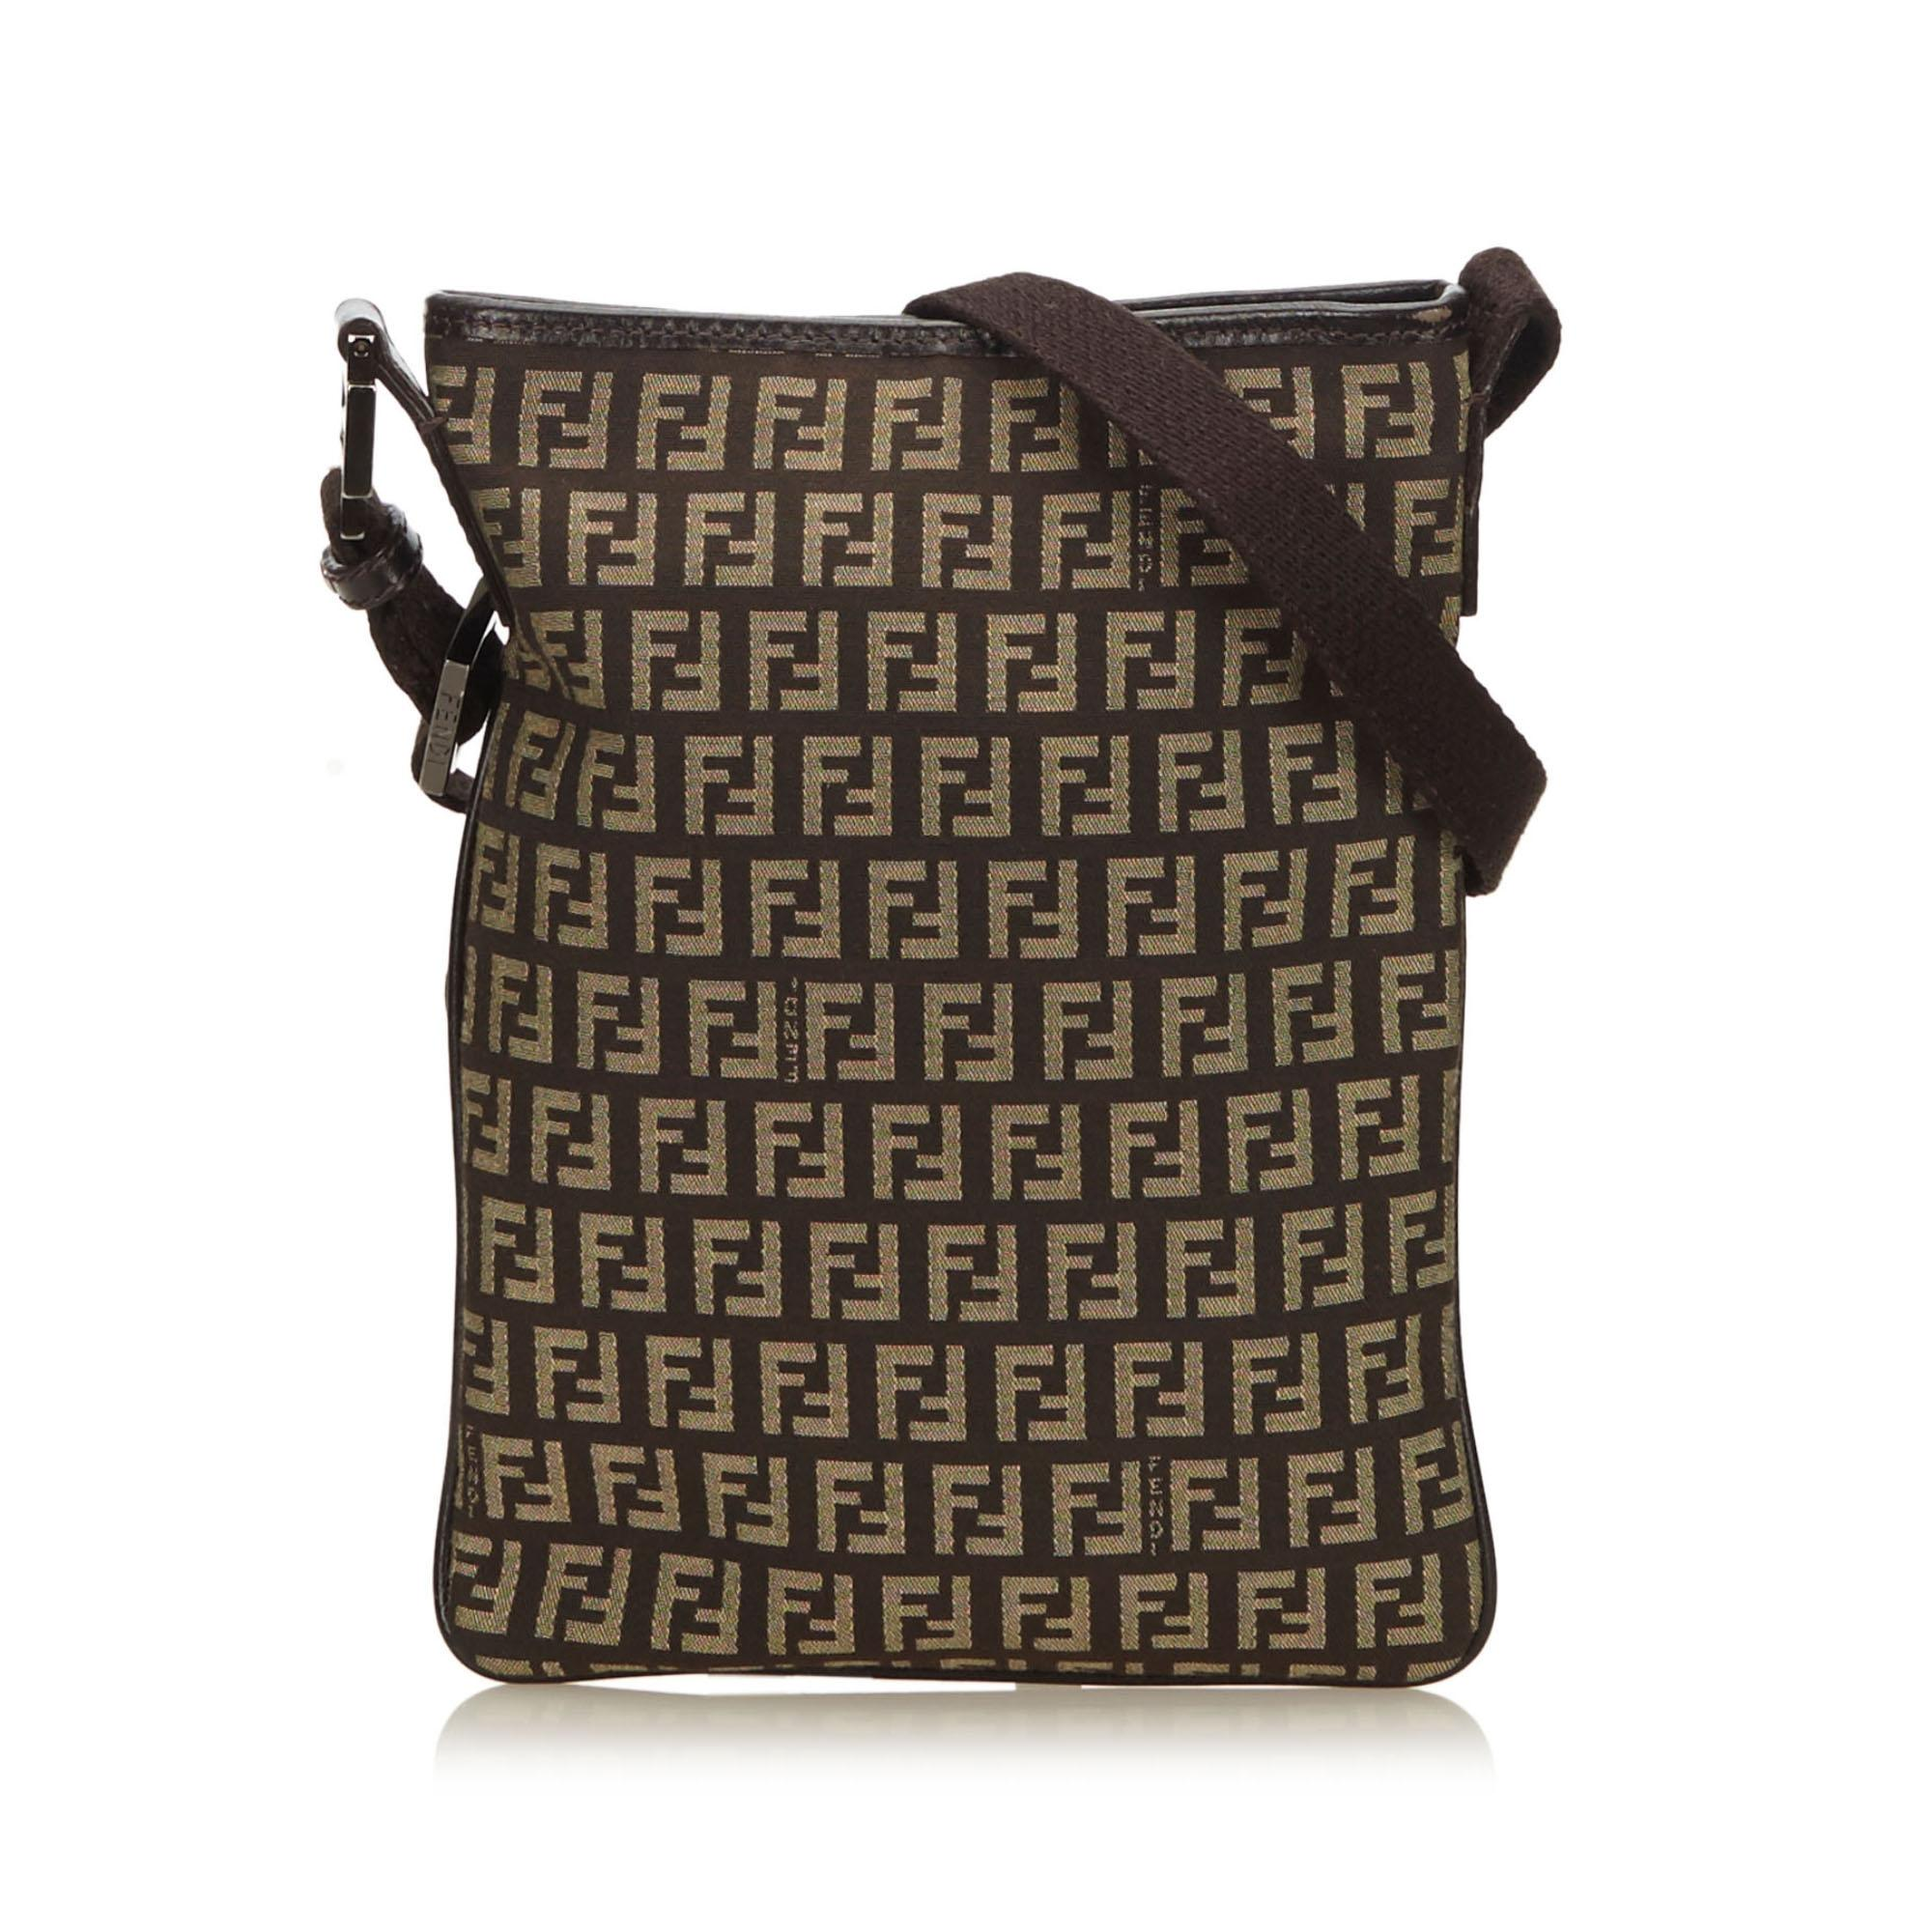 e85cb3f961 ... italy fendi bags on sale up to 70 off at tradesy 27a1b c30ee